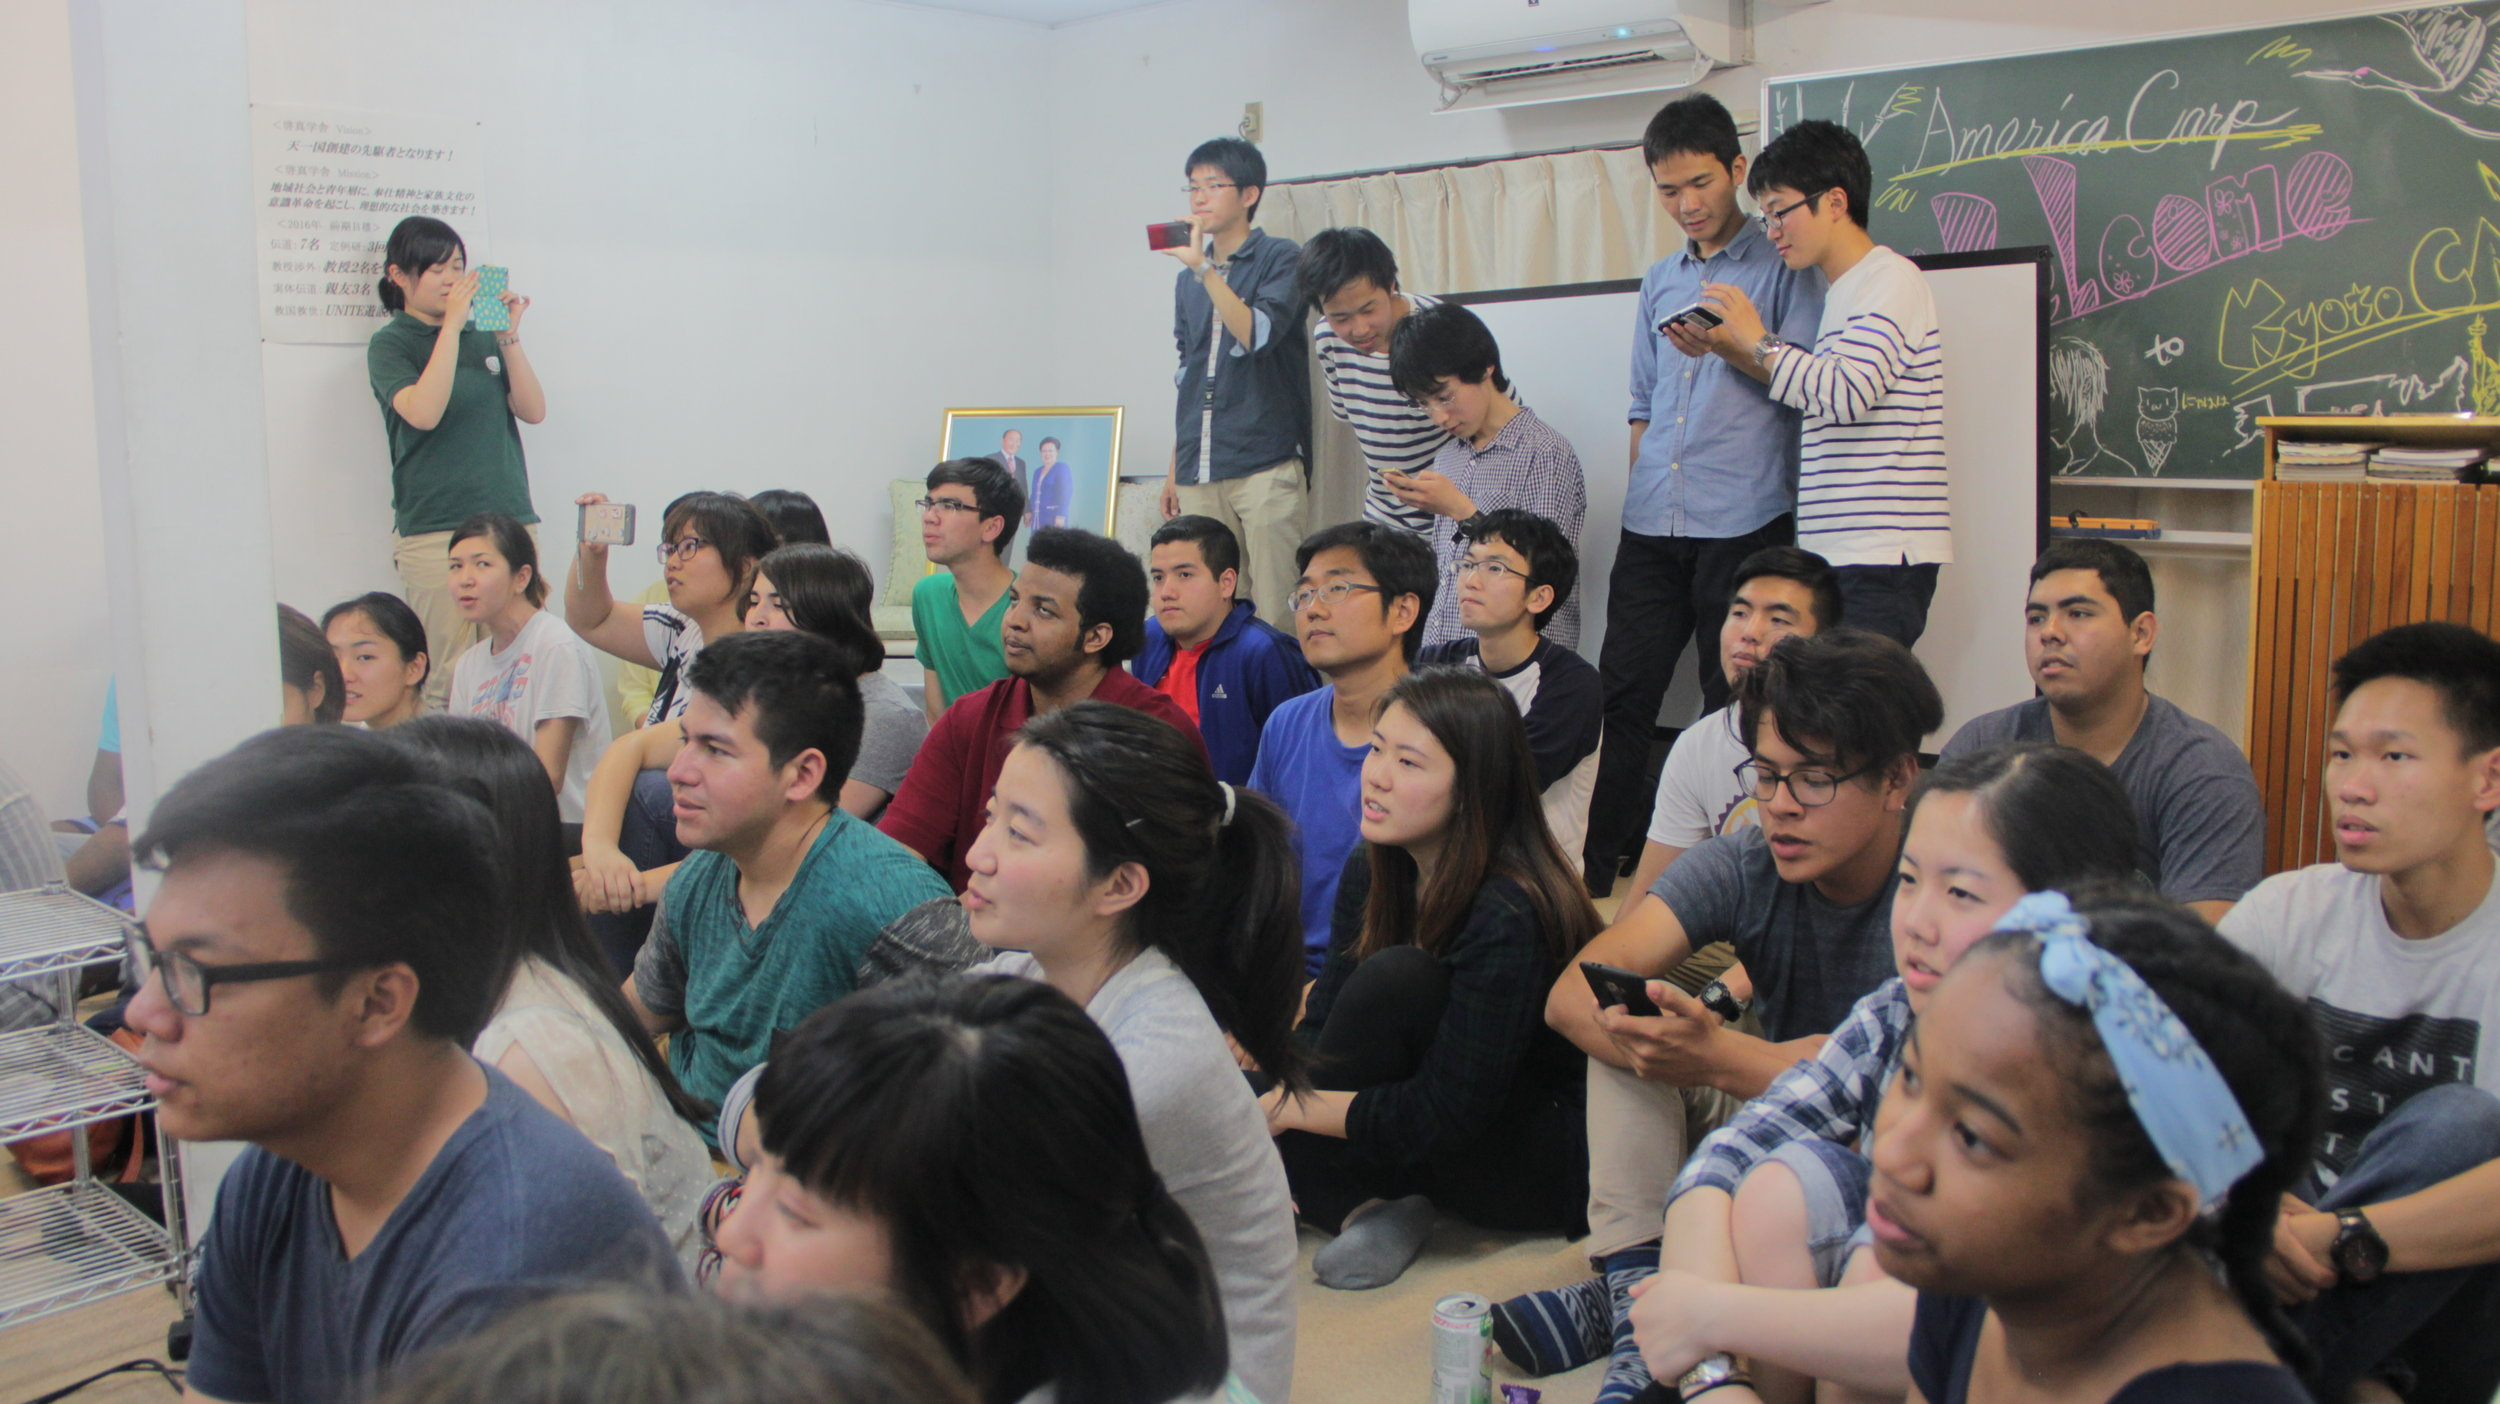 Students gathered at the CARP center by Kyoto University.